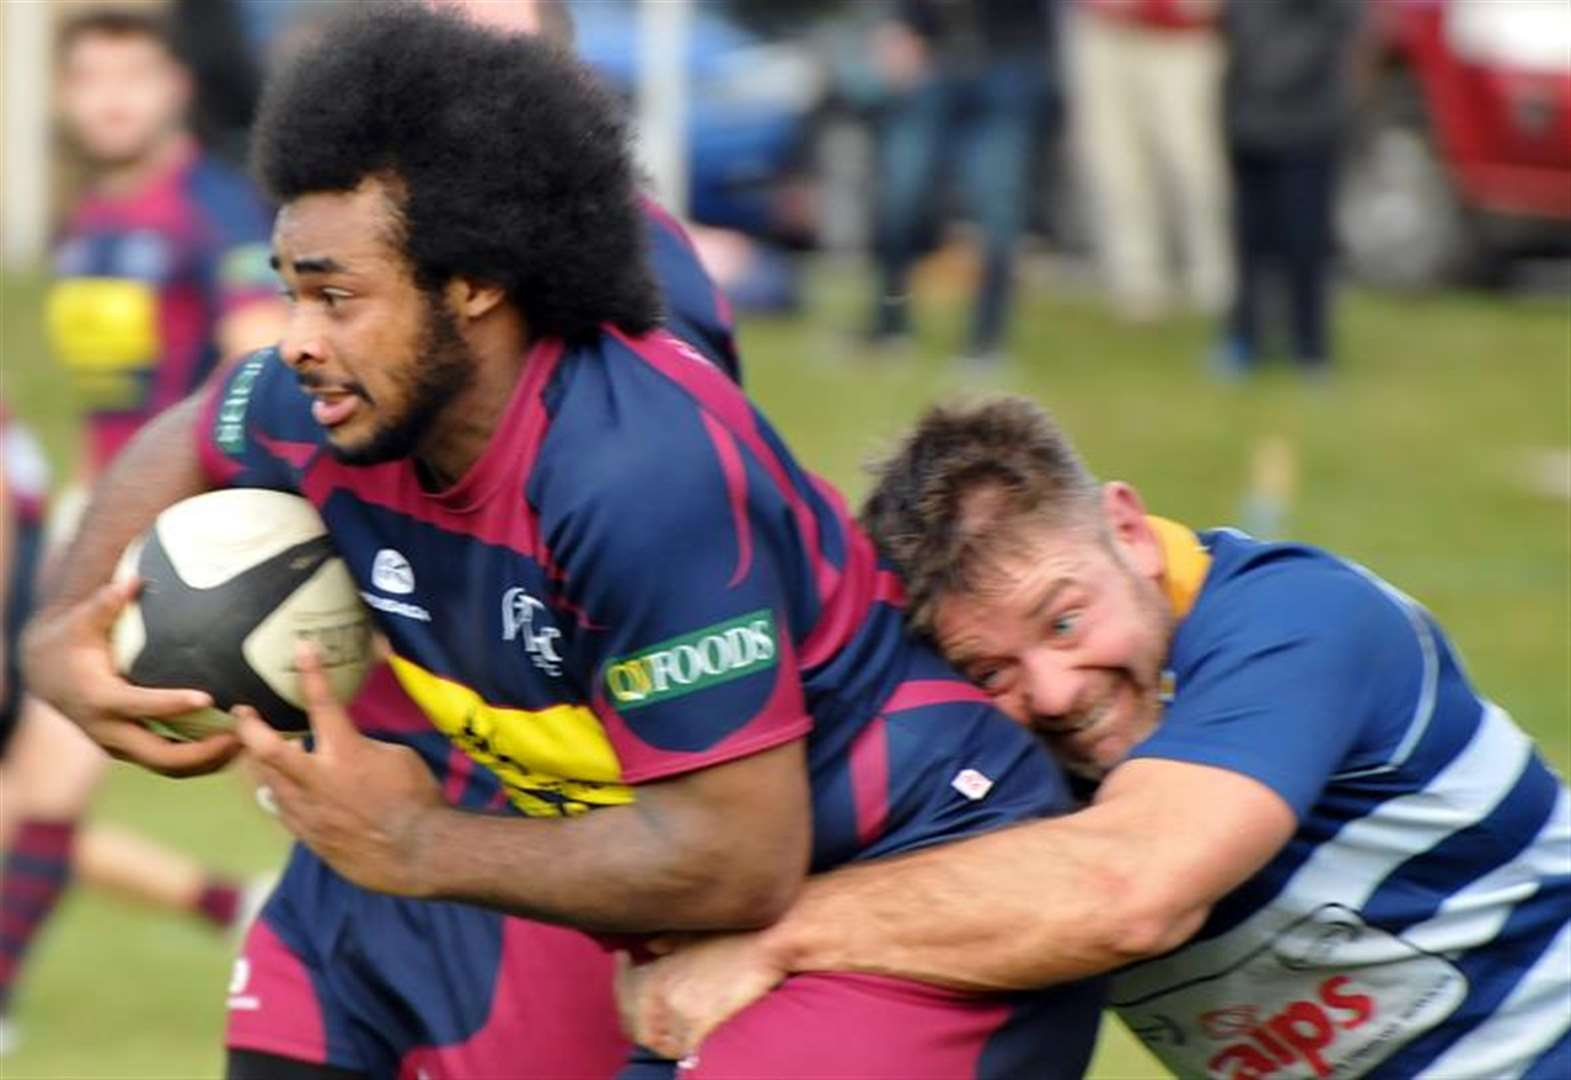 RUGBY UNION: Spalding earn first away win of season